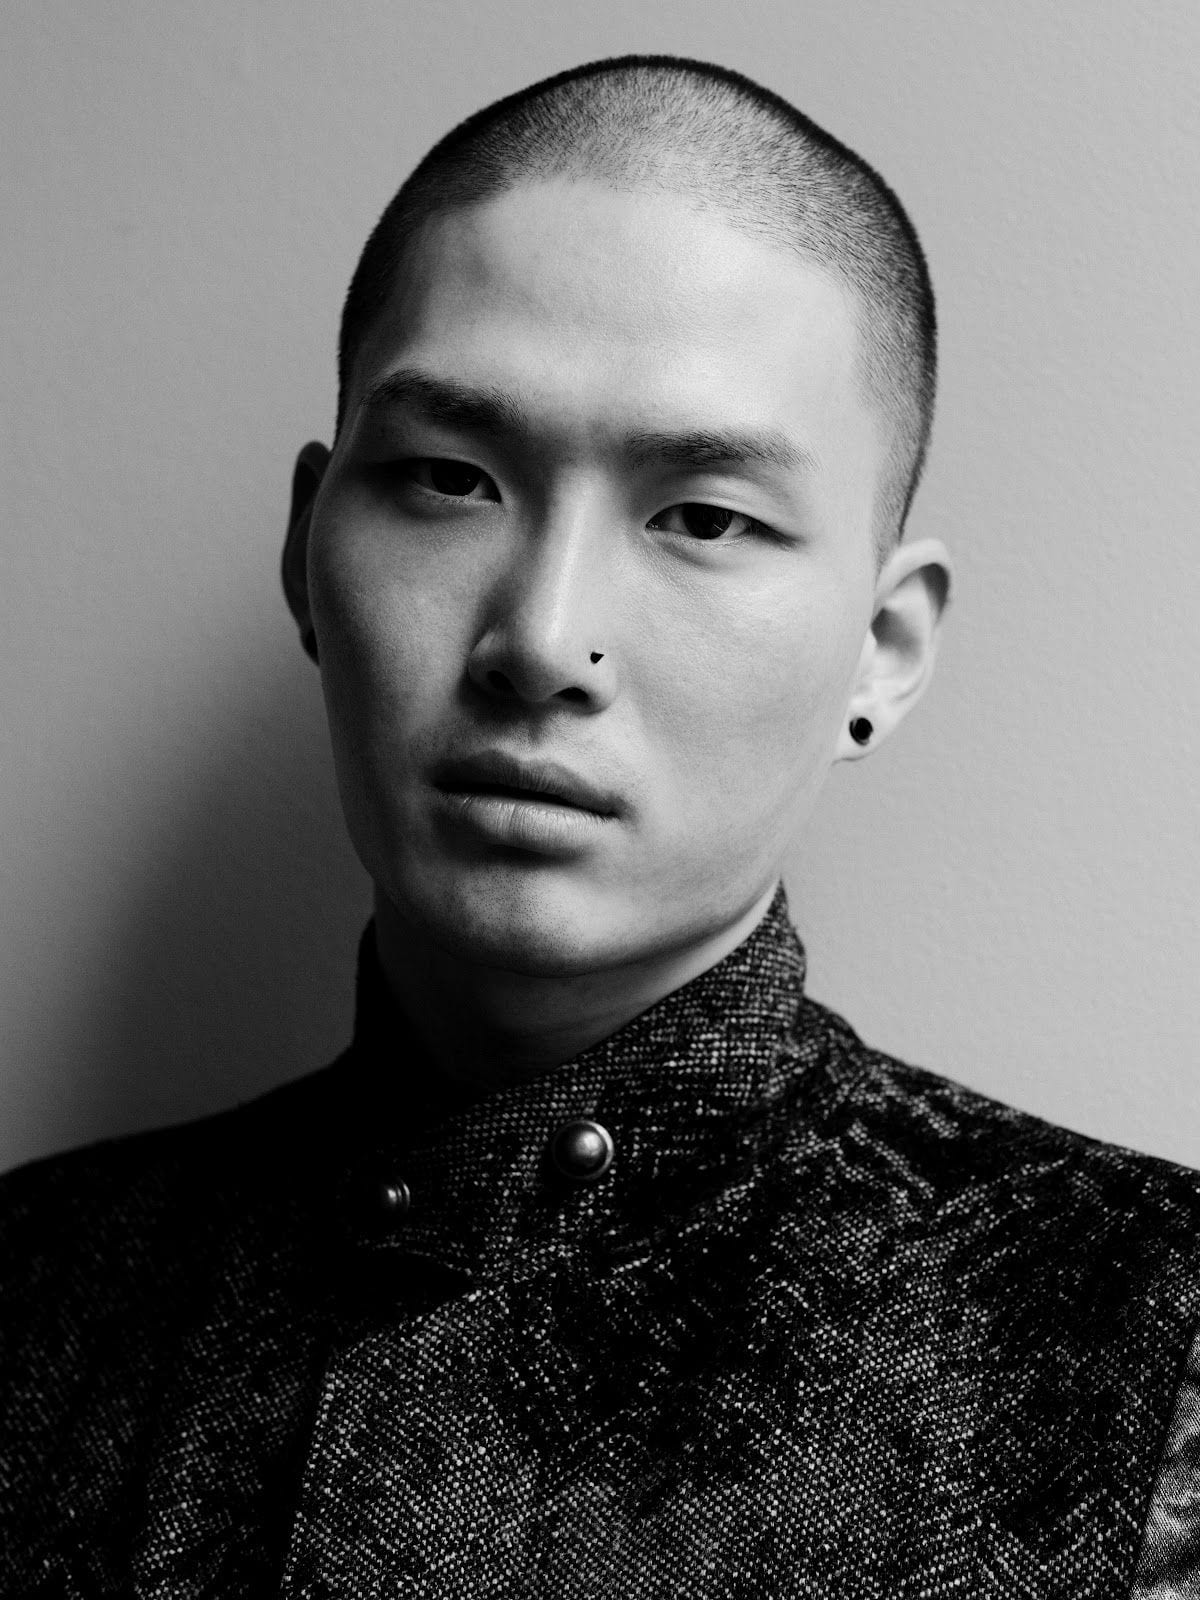 Top 10 Asian Male Models 2019 - Updated List